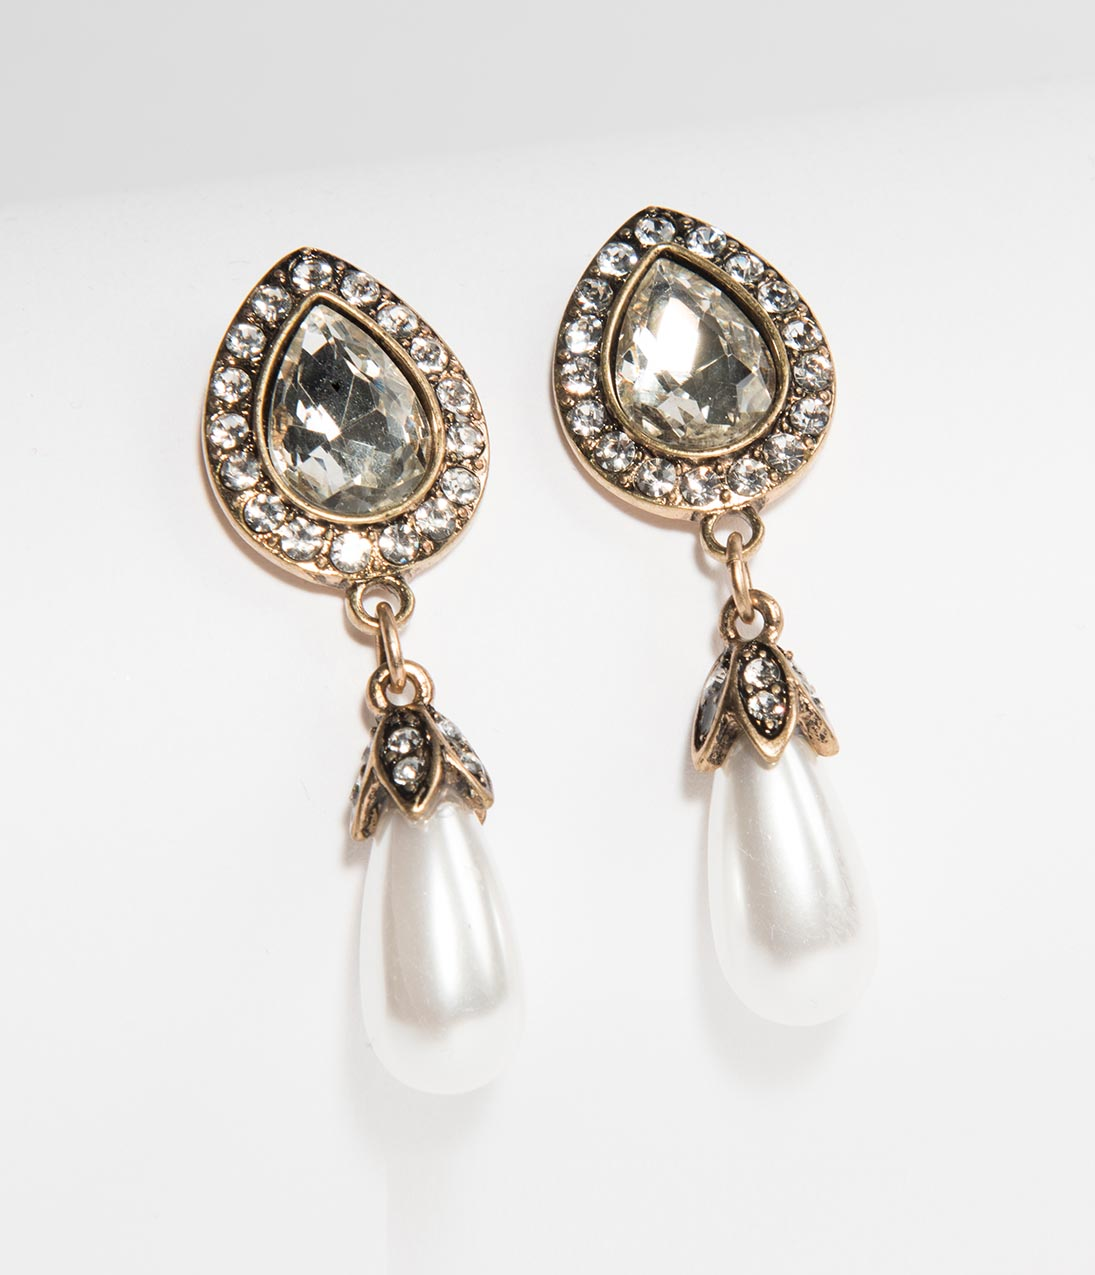 1930s Jewelry Styles and Trends Vintage Style Ivory Pearl  Silver Crystal Teardrop Earrings $22.00 AT vintagedancer.com